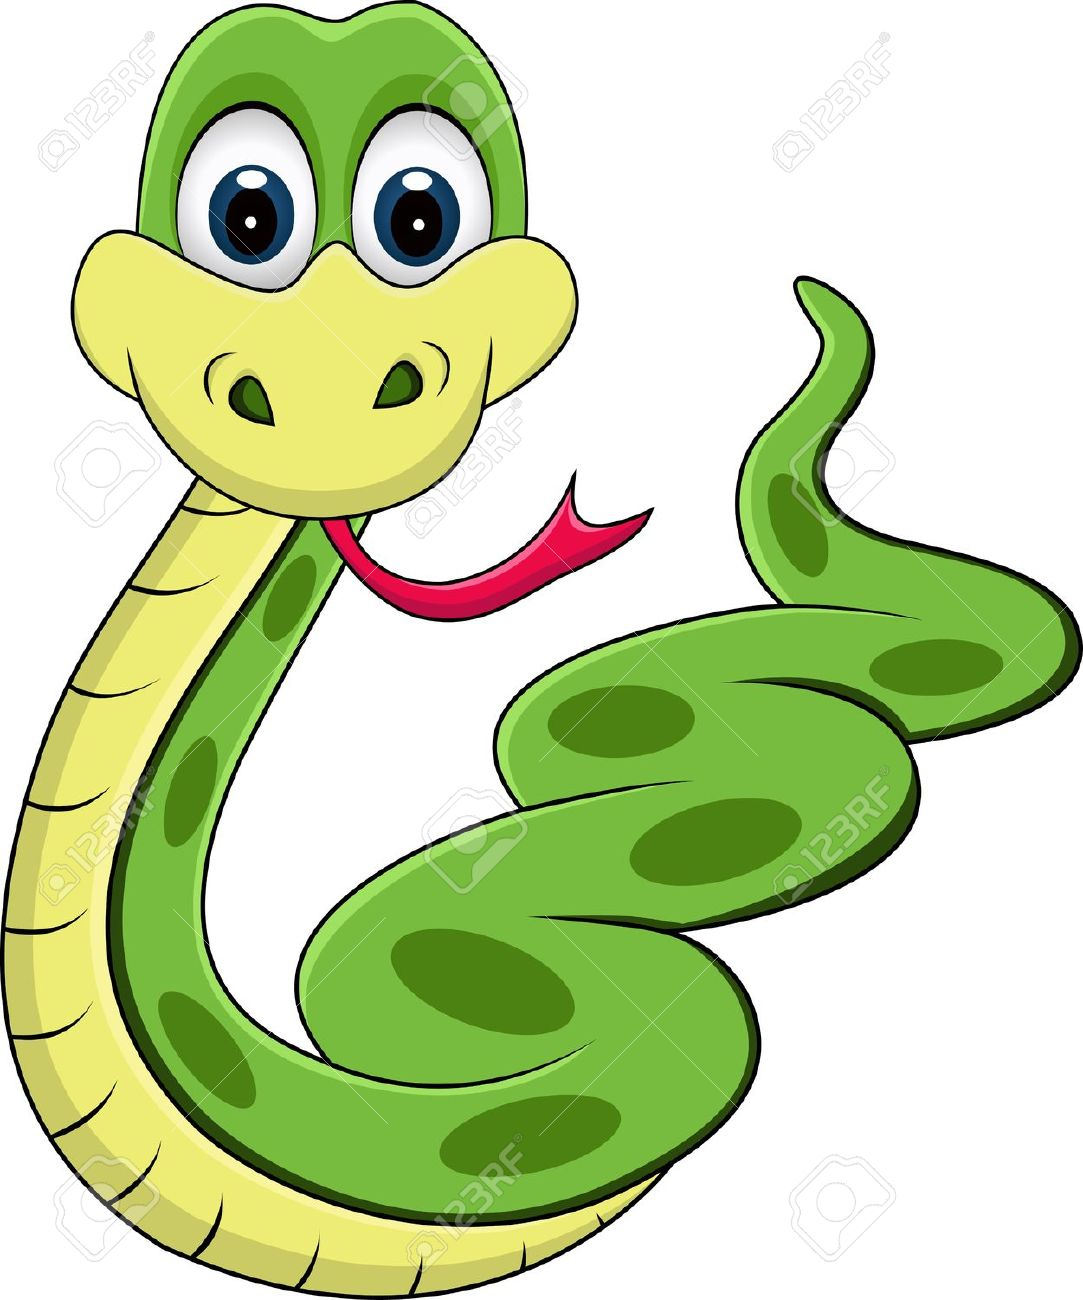 CLIPART FUNNY SNAKE.